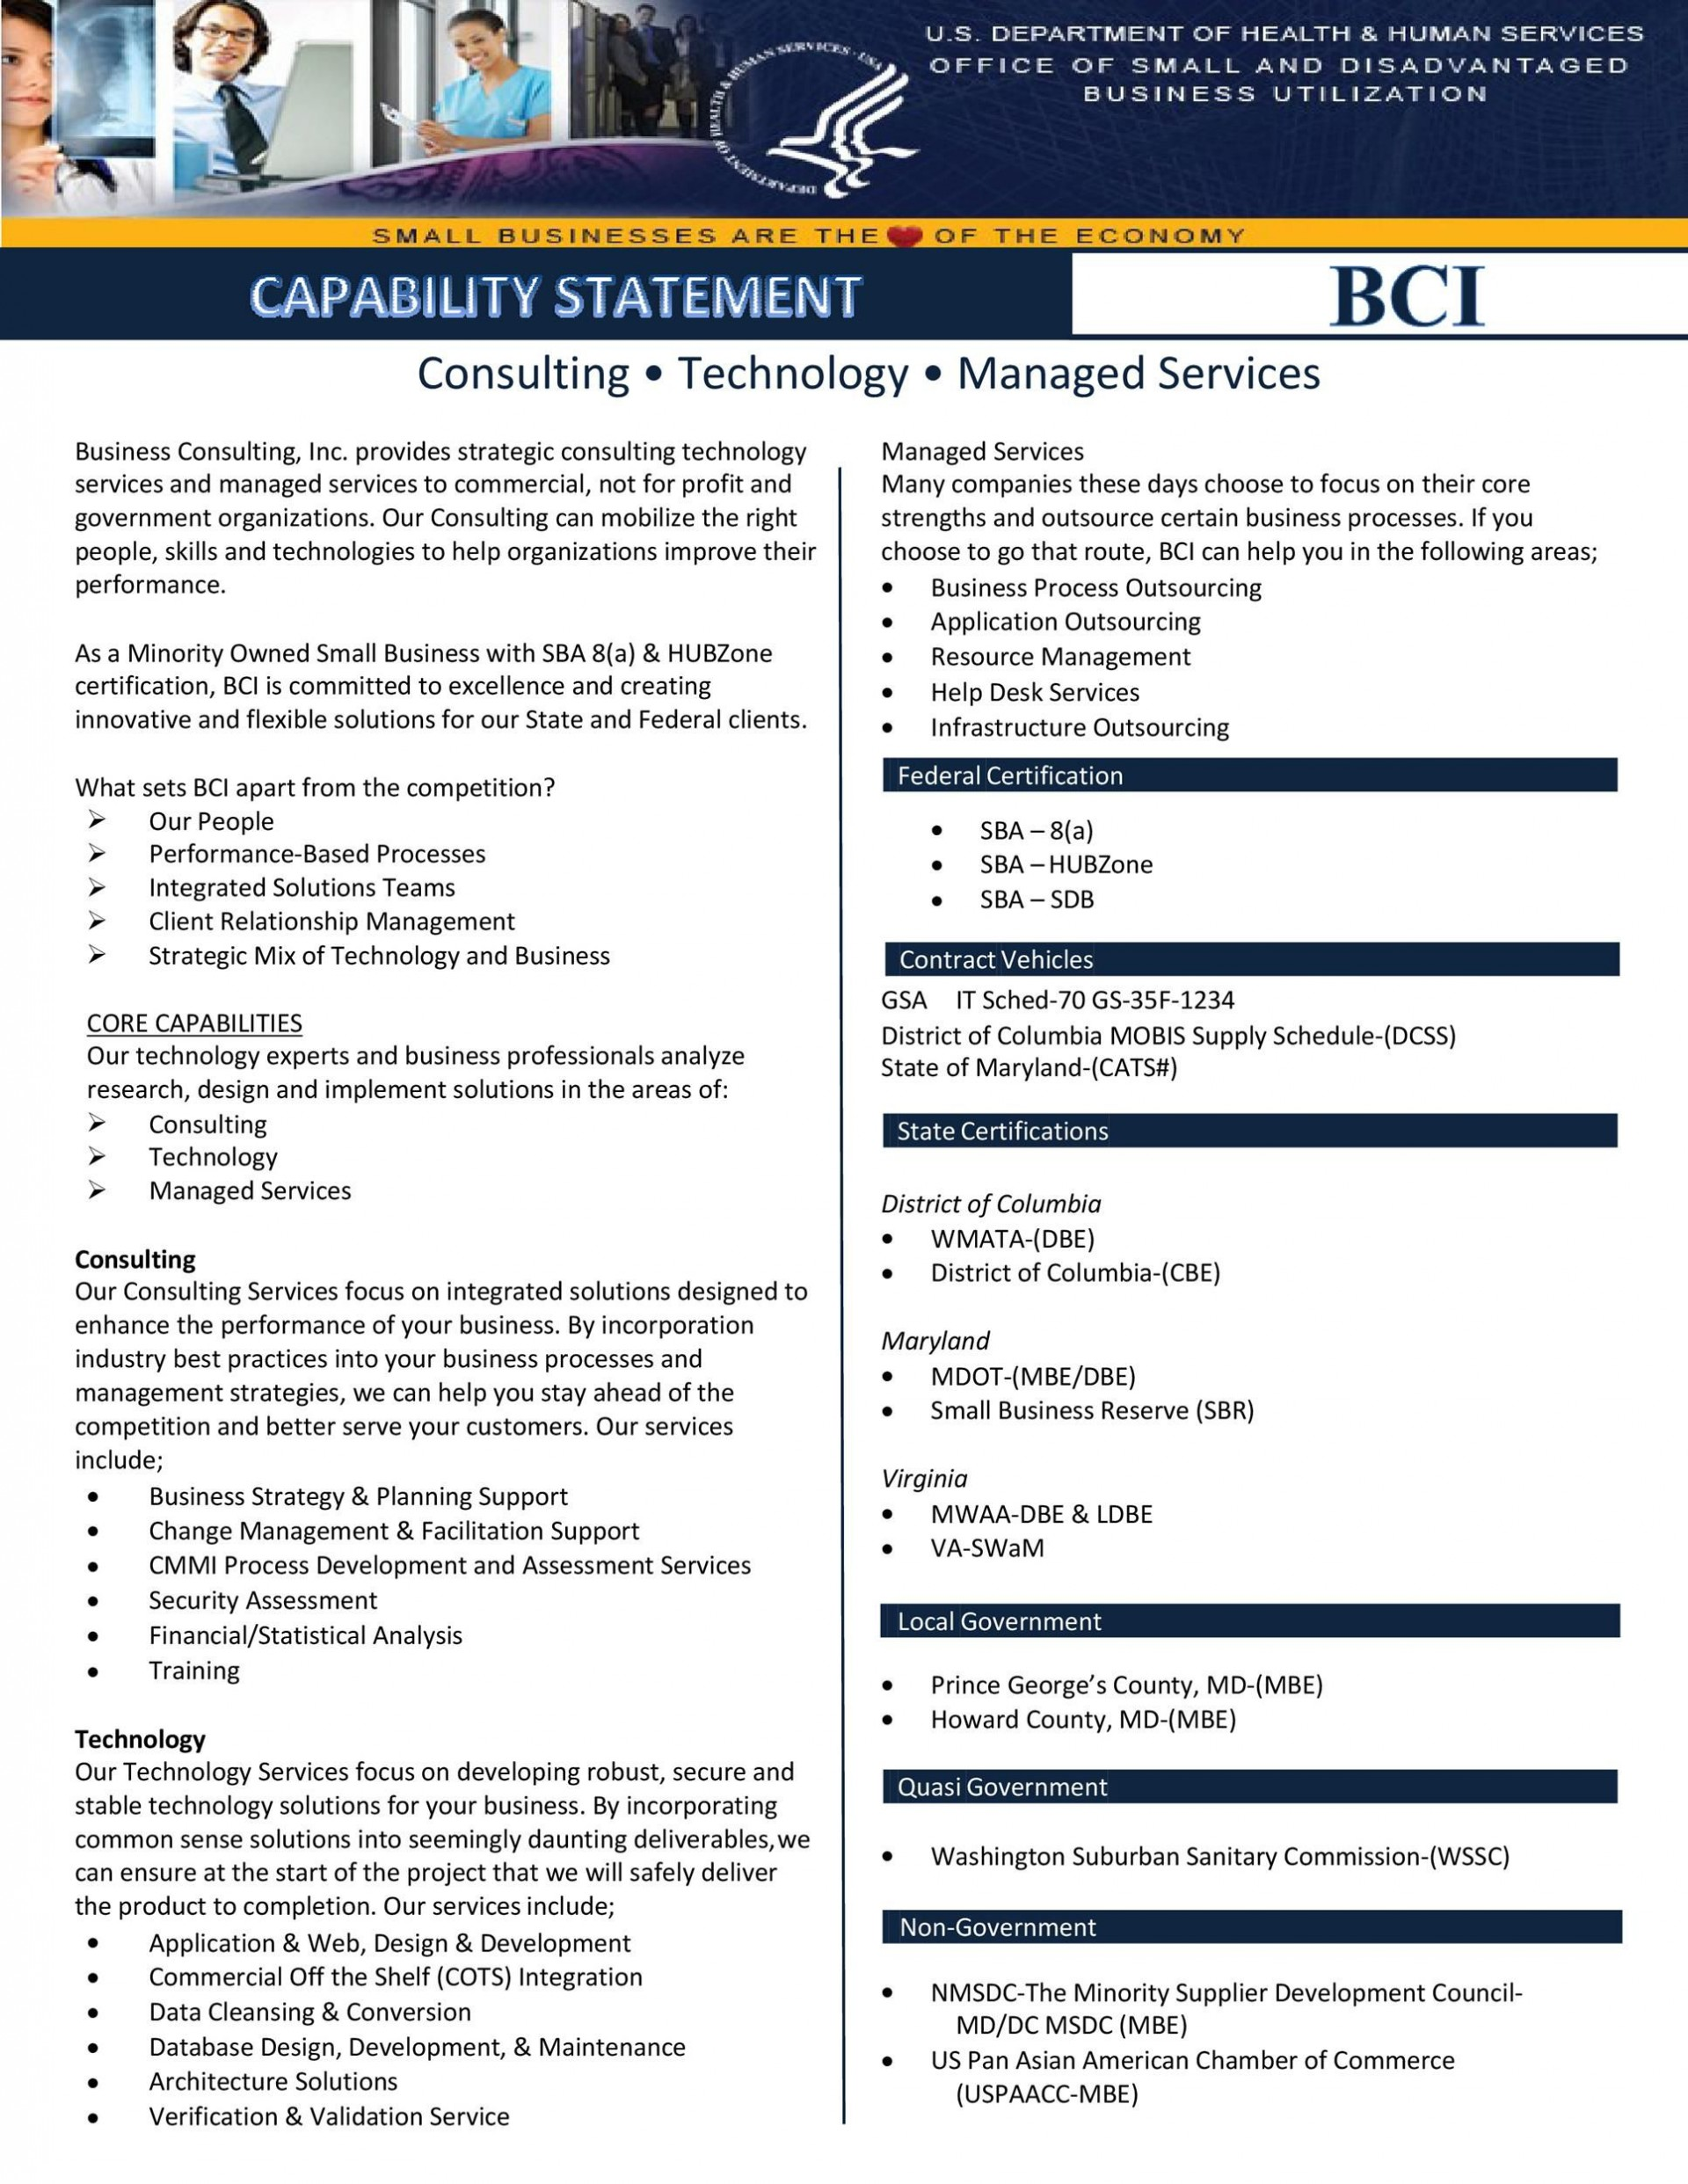 007 Dreaded Capability Statement Template Word Doc Example  Document Free1920